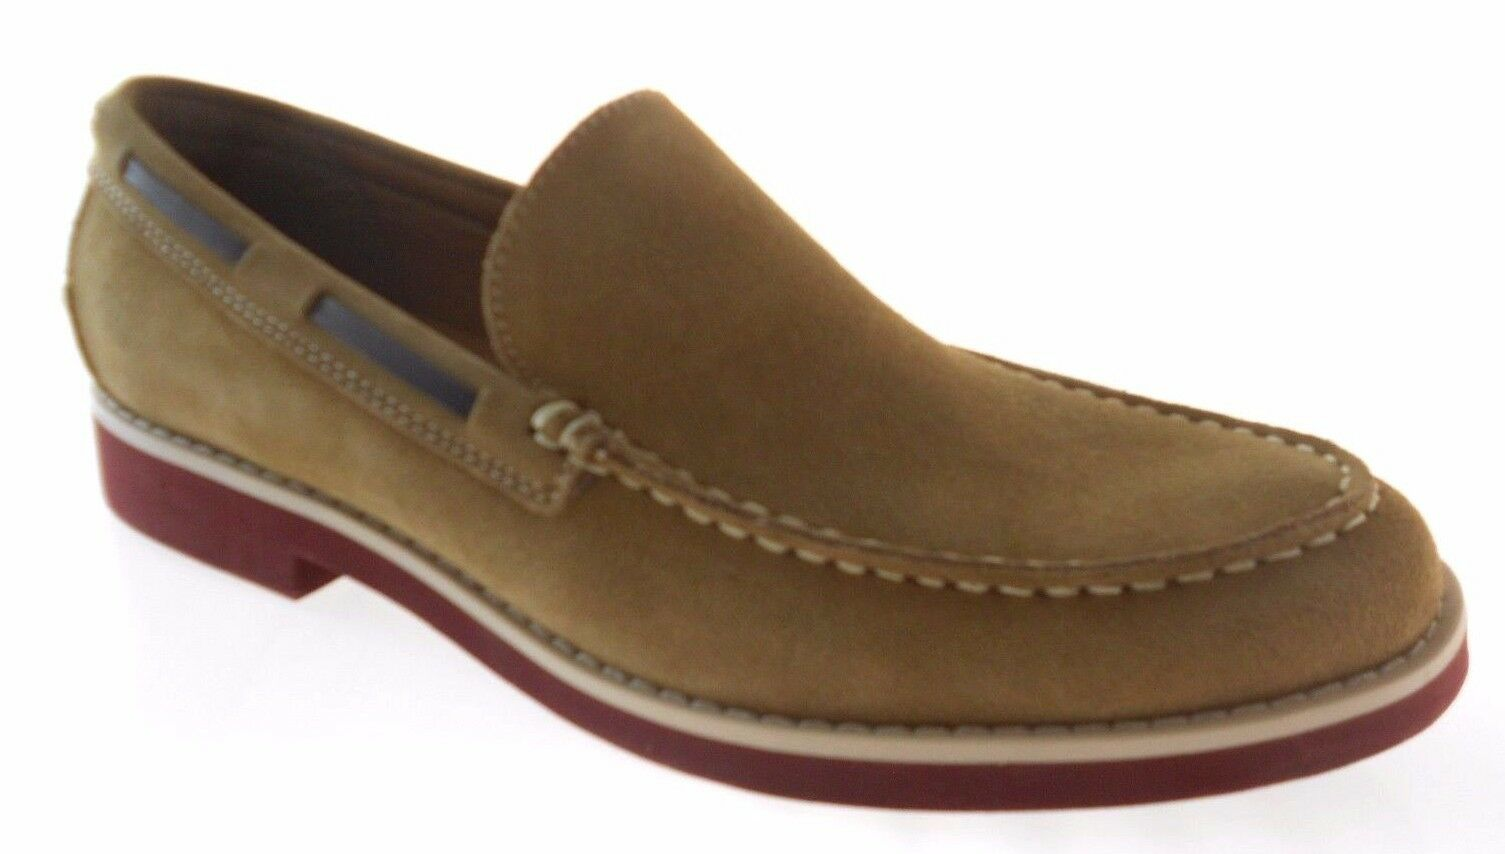 G.H.BASS JAIME MEN'S TAN SUEDE SLIP ON LOAFERS size 8,